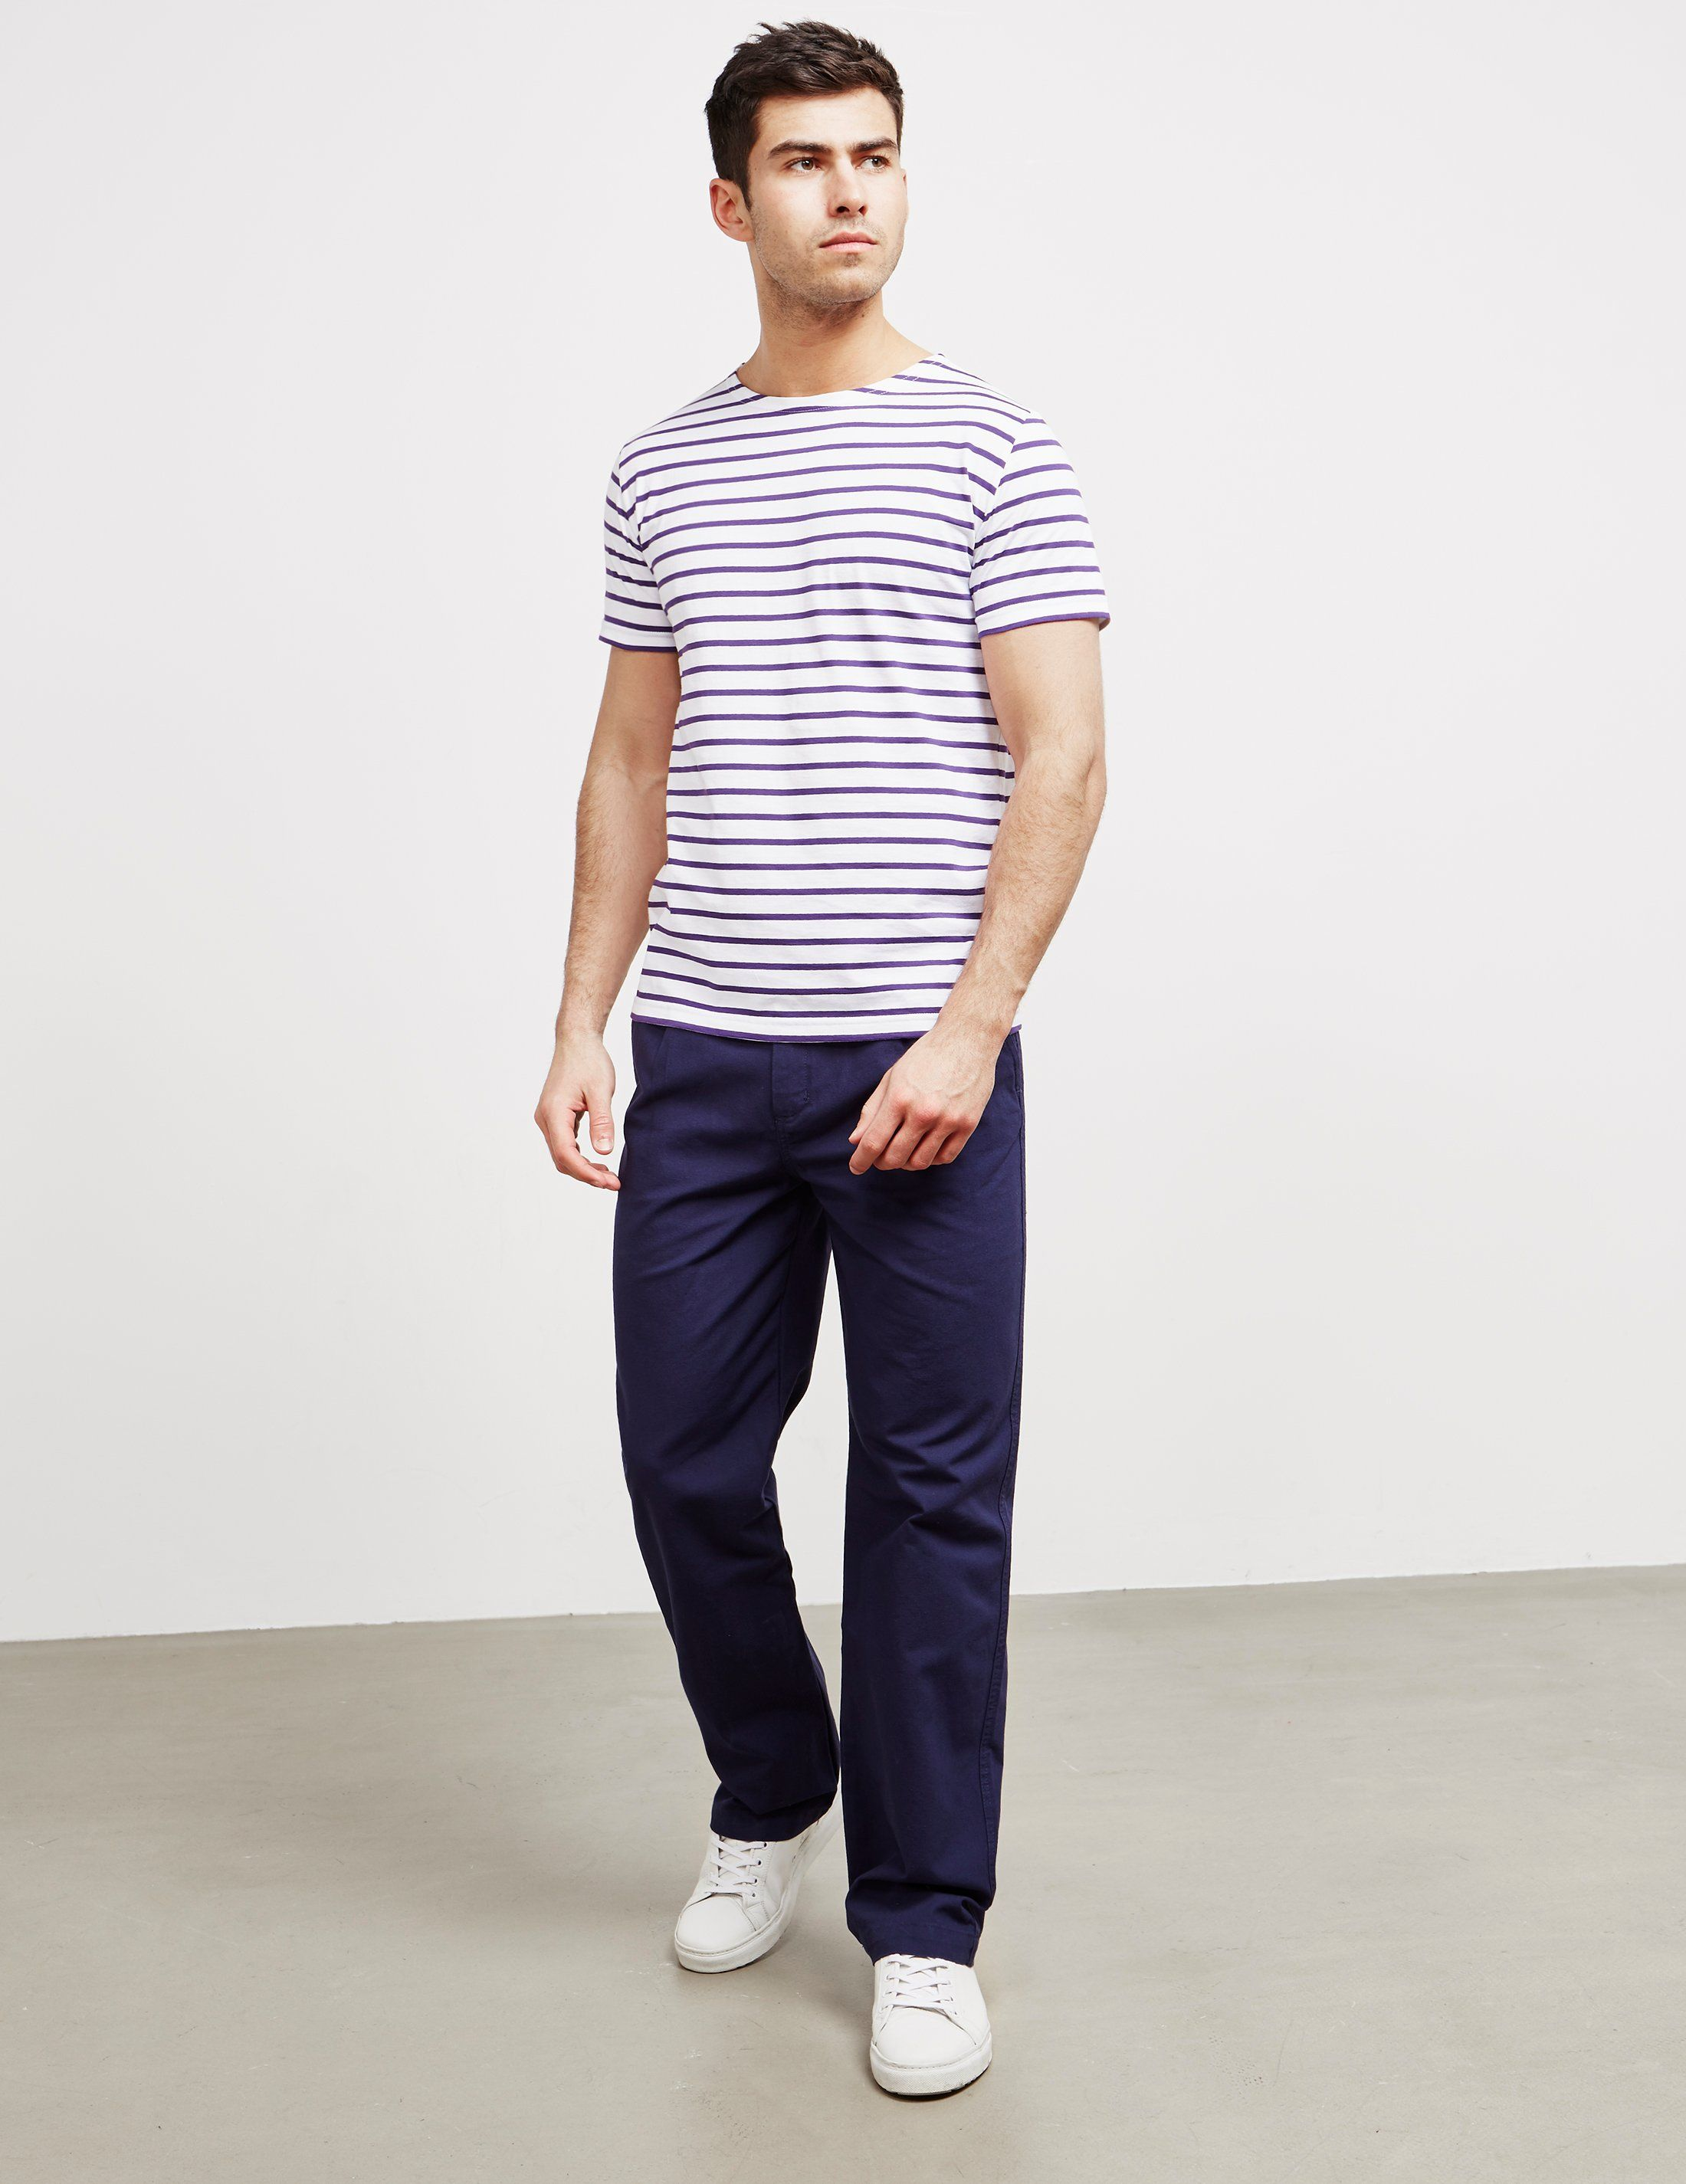 Armor Lux Small Stripe Short Sleeve T-Shirt